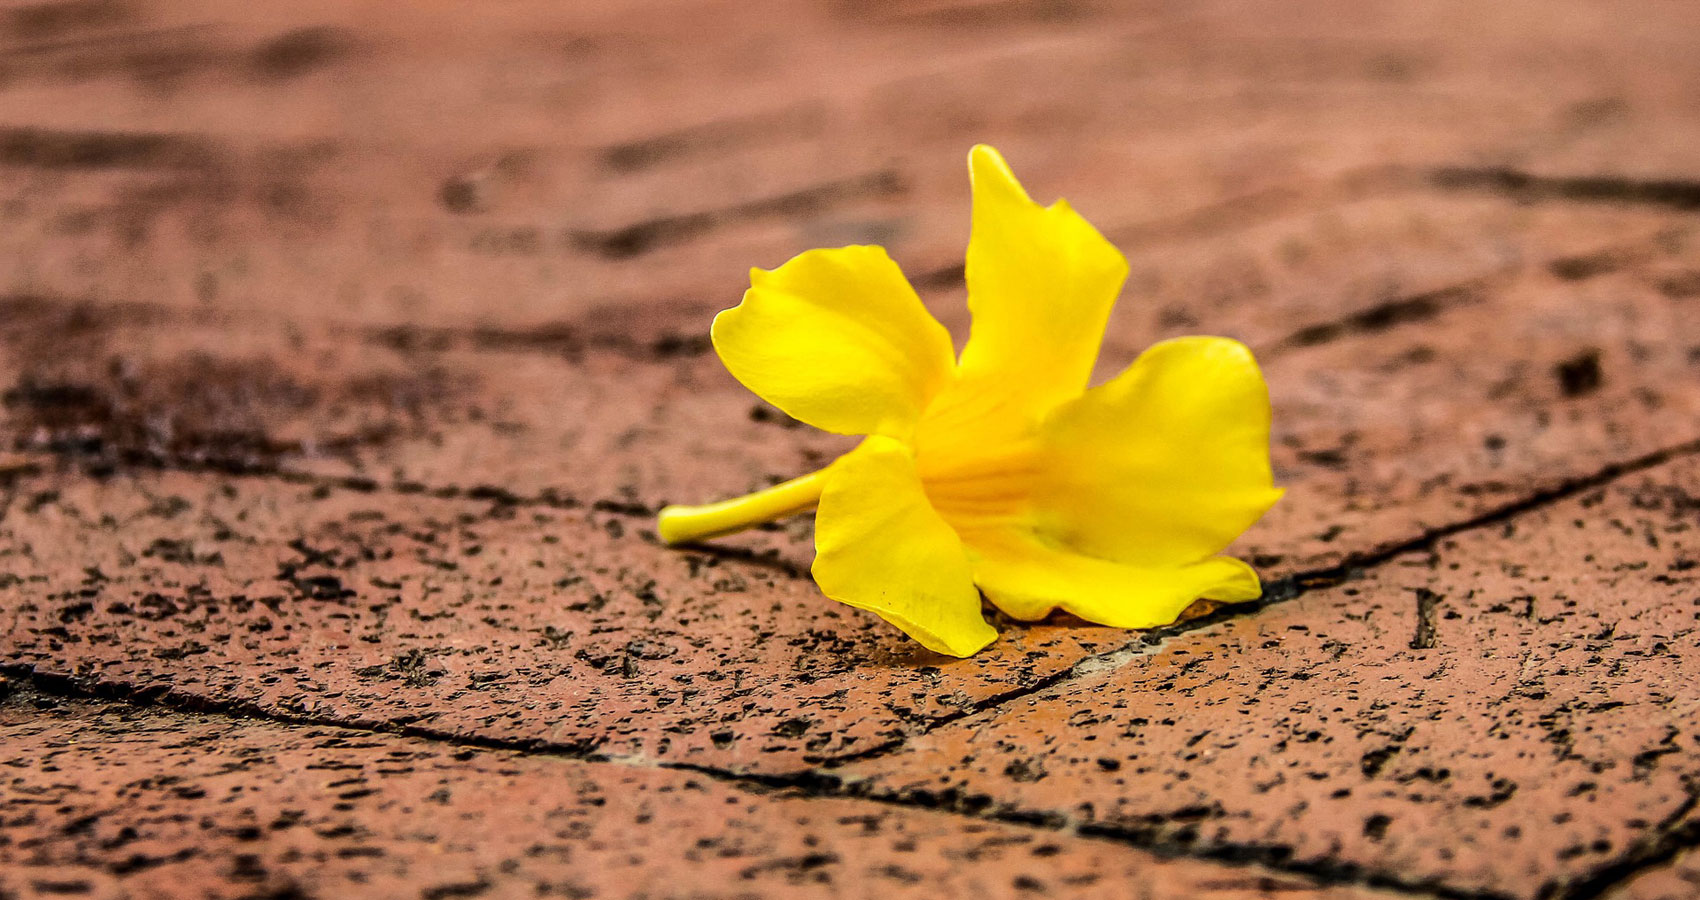 All the Daffs are Dead by J.Ahlberg at Spillwords.com